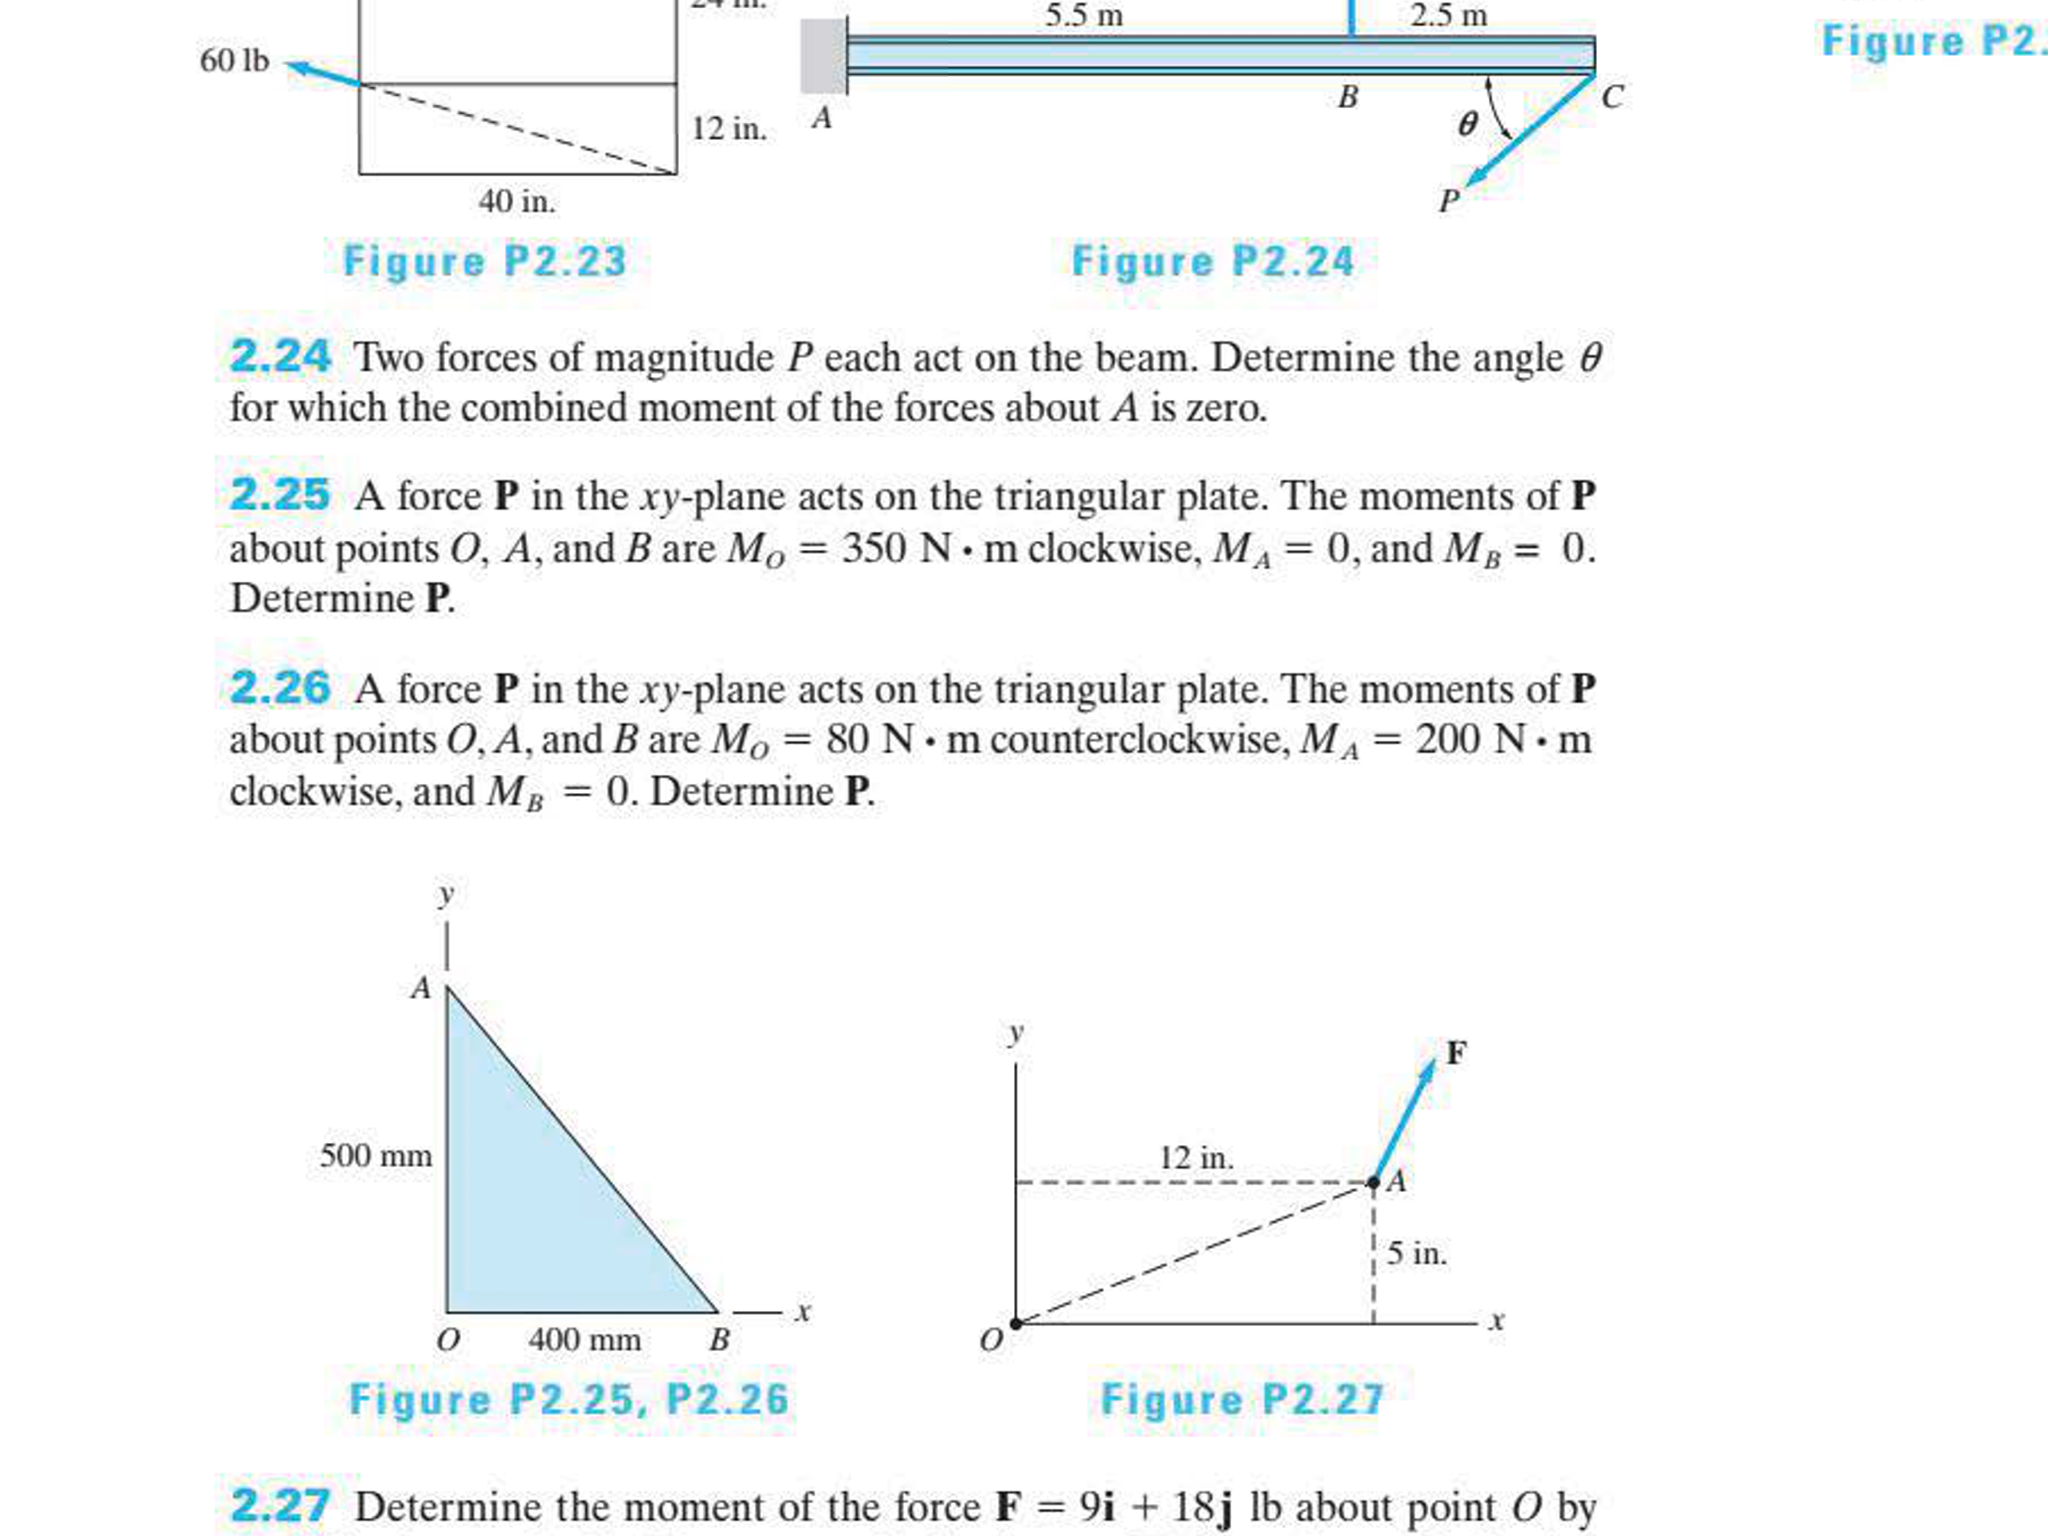 5.5 m 2.5 m Figure P2 60 lb с В ө 12 in, A 40 in P Figure P2.23 Figure P2.24 2.24 Two forces of magnitude P each act on the beam. Determine the angle 0 for which the combined moment of the forces about A is zero. 2.25 A force P in the xy-plane acts on the triangular plate. The moments of P about points O, A, and B are Mo 350 N m clockwise, MA 0, and MB 0 Determine P 2.26 A force P in the xy-plane acts on the triangular plate. The moments of P about points O, A, and B are Mo 80 N m counterclockwise, MA 200 N m clockwise, and M 0. Determine P A 500 mm 12 in. 5 in 400 mm В Figure P2.25, P2.26 Figure P2.27 2.27 Determine the moment of the force F 9i + 18j lb about point O by C